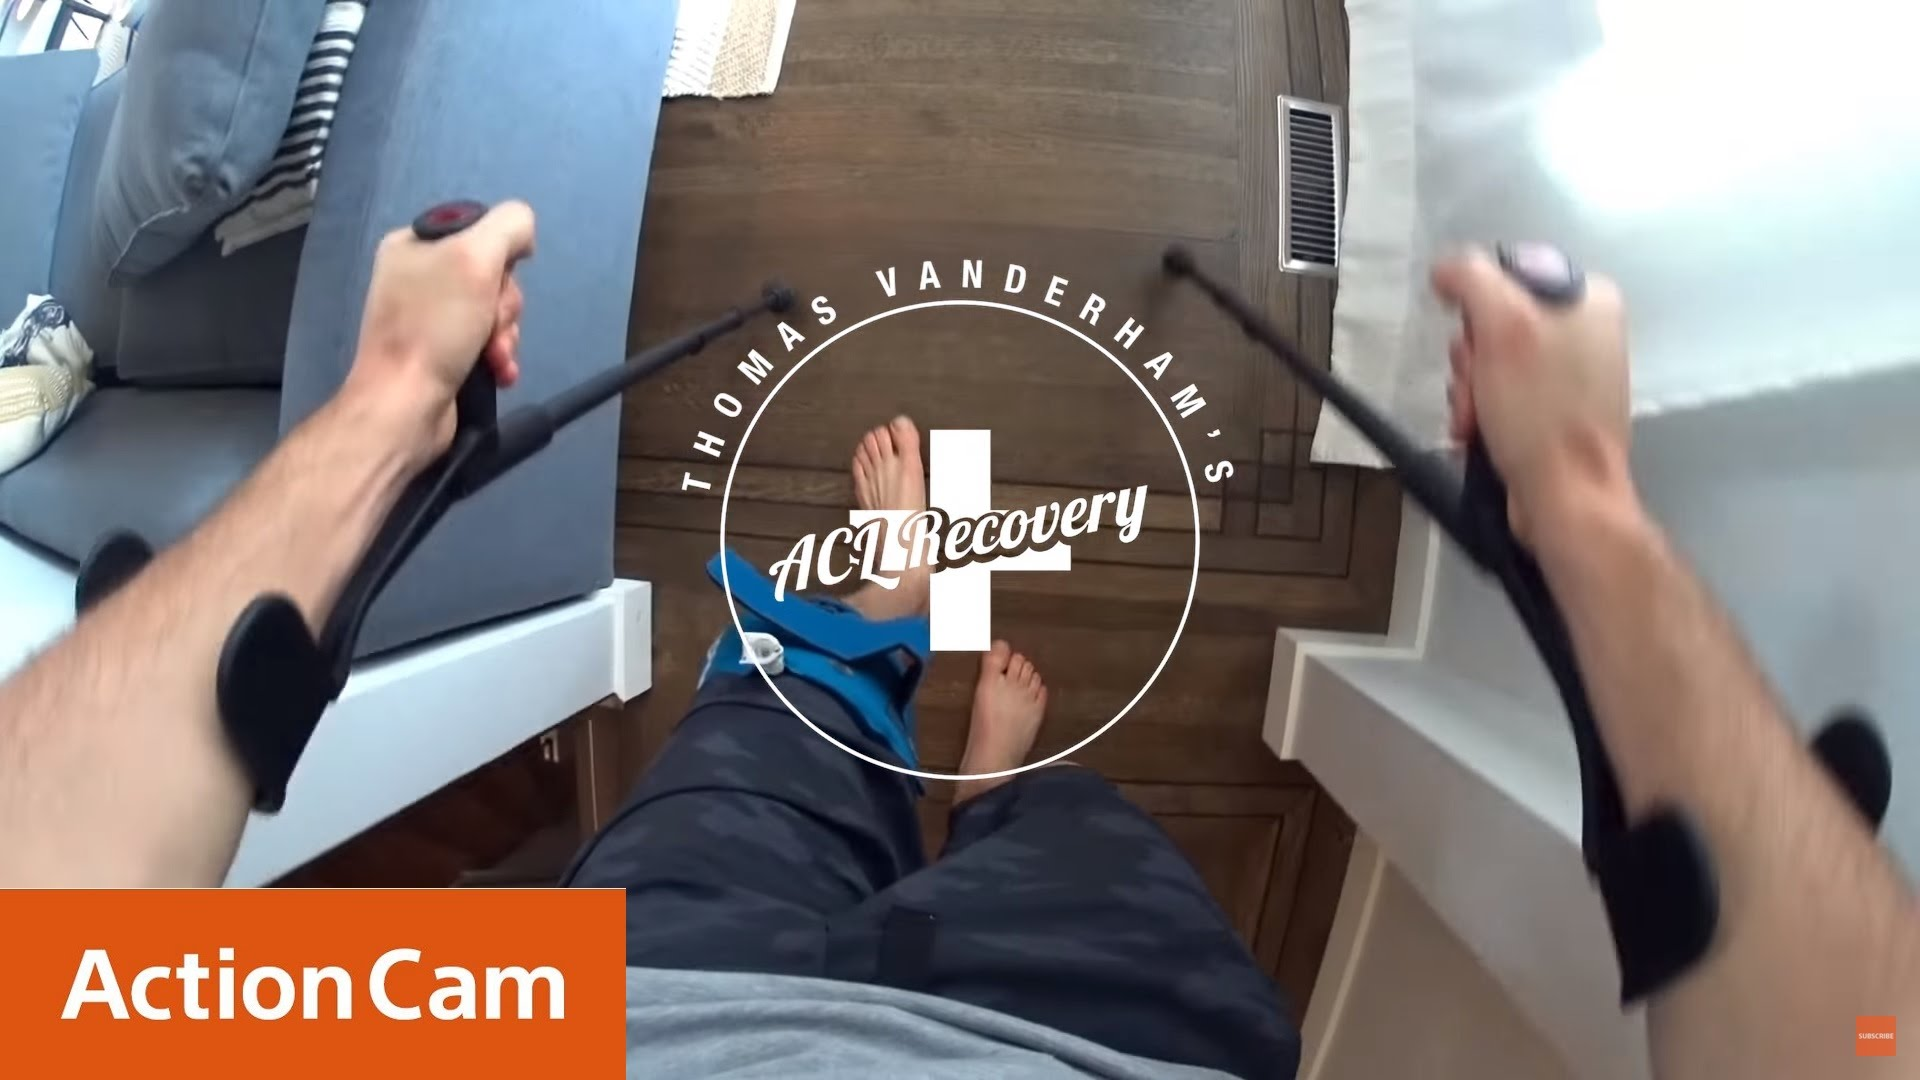 Action Cam | Thomas Vanderham ACL Recovery | Sony